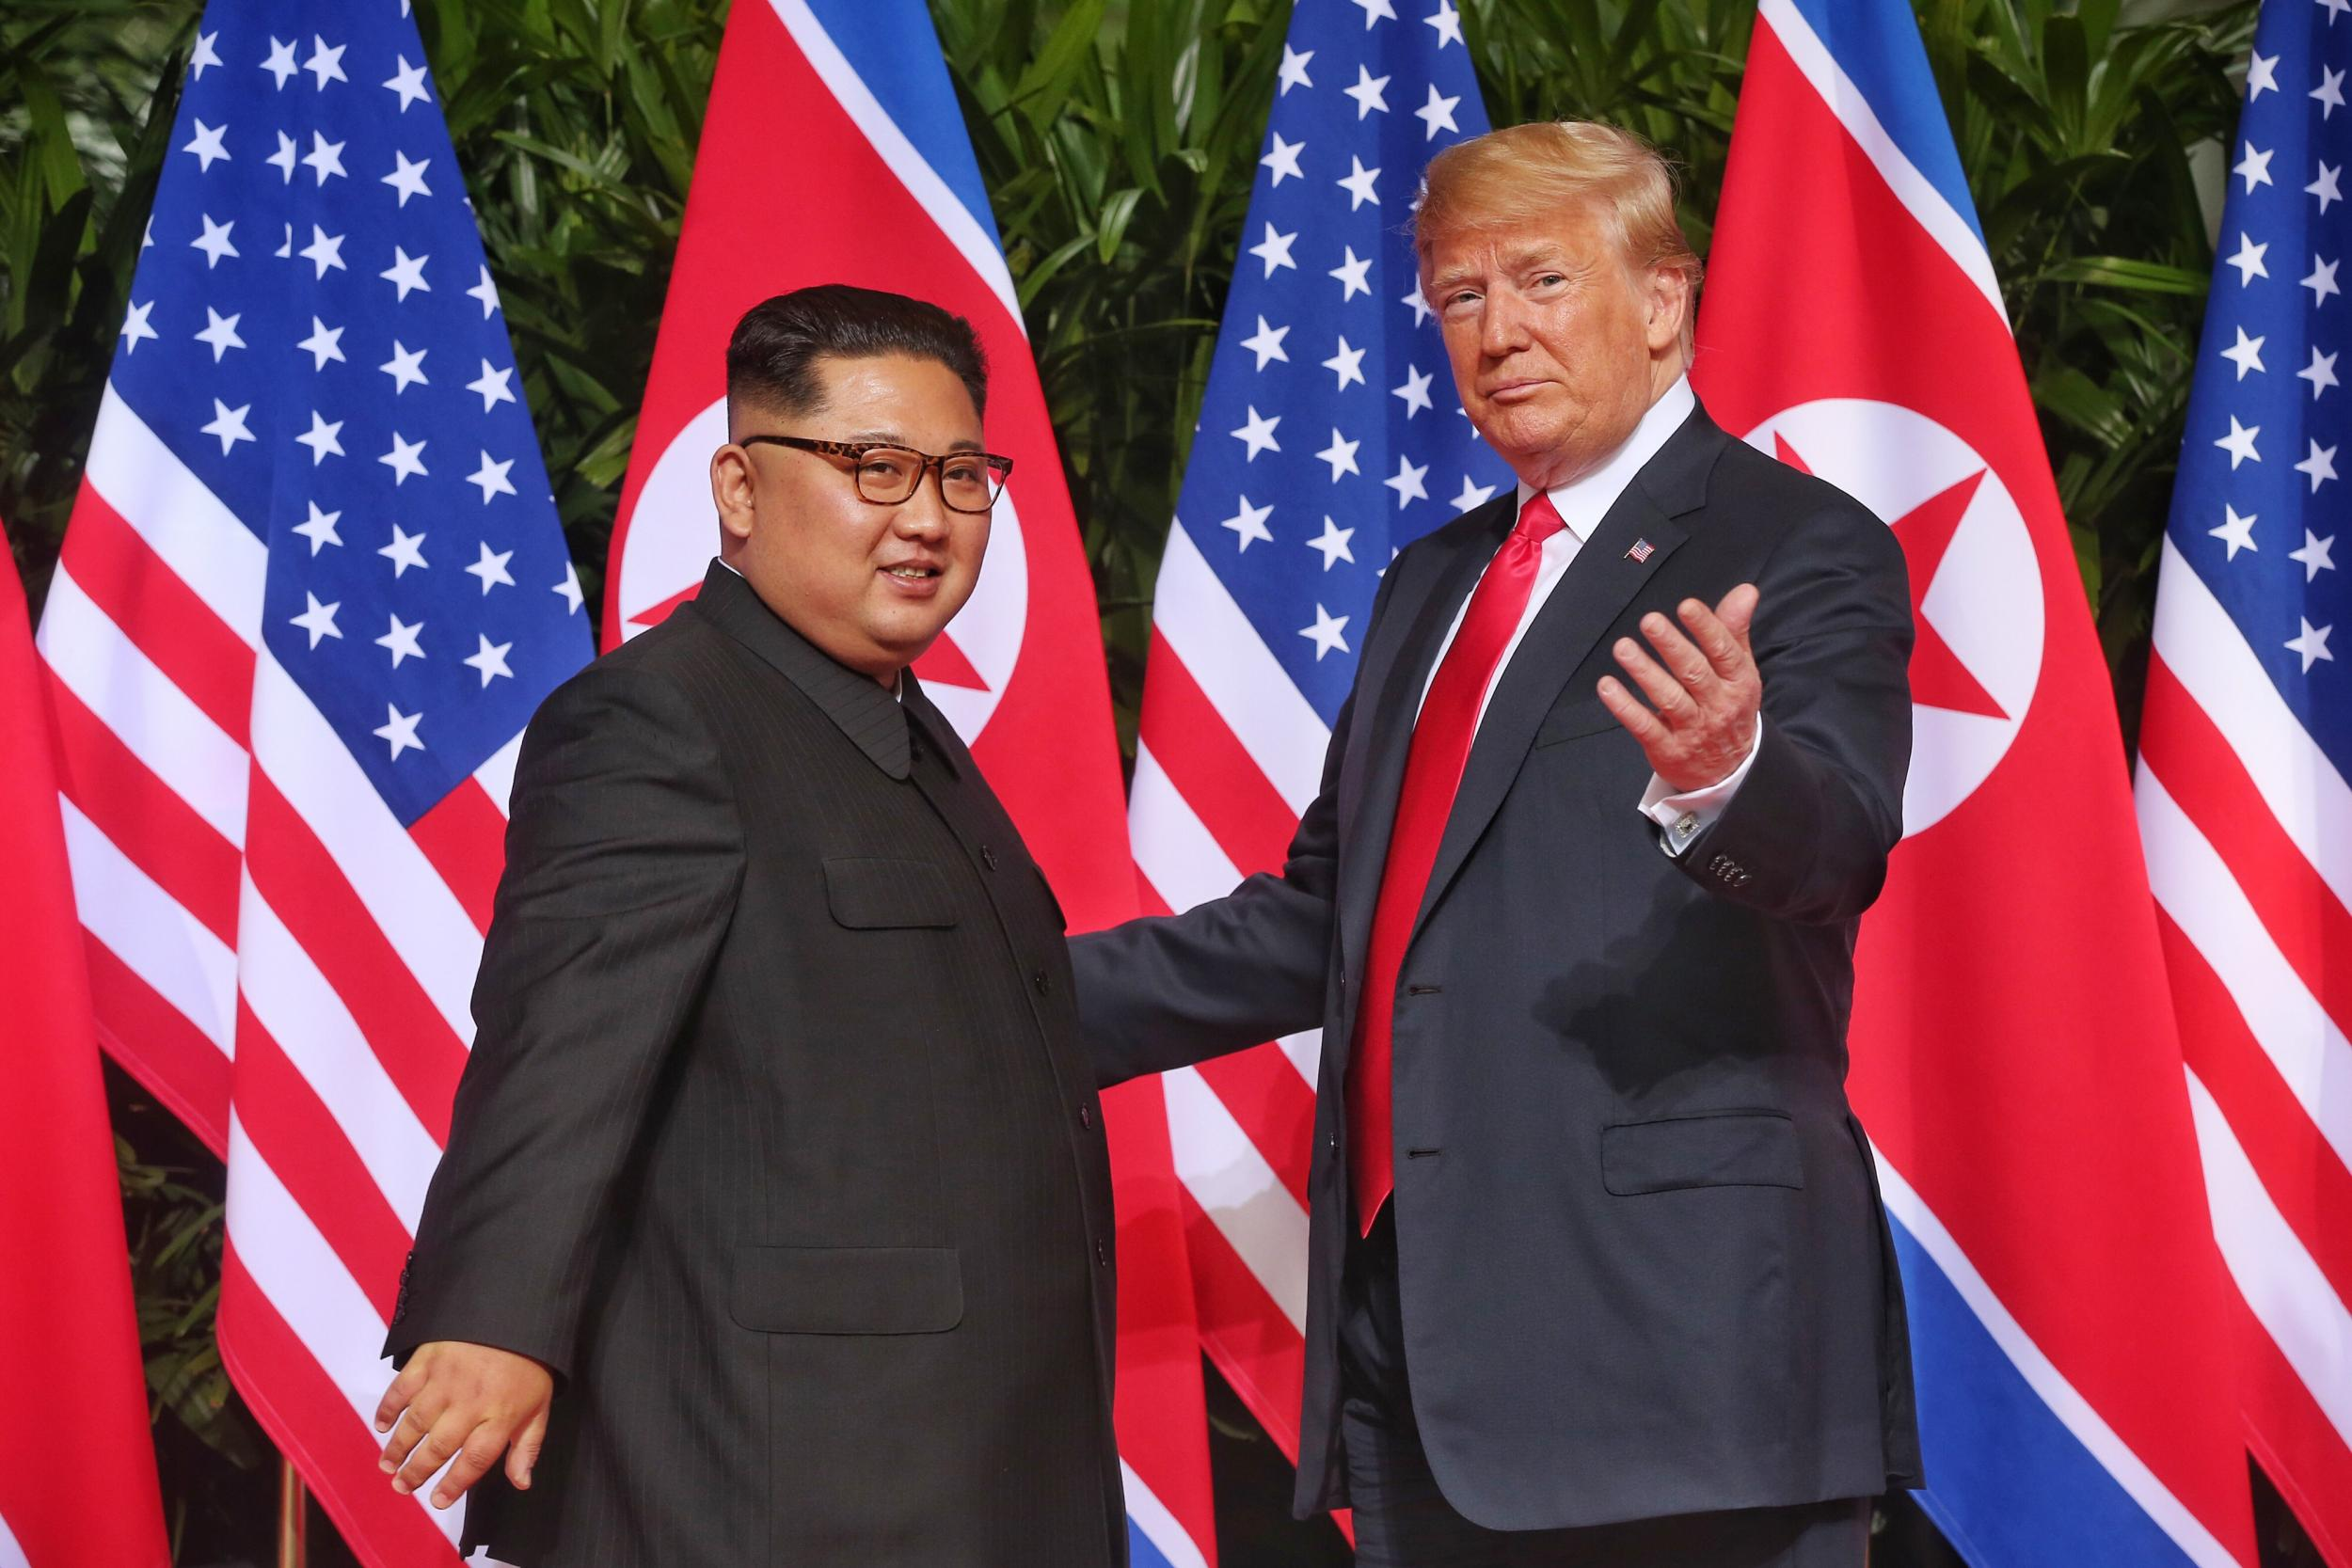 History made as meeting between Trump and Kim Jong-un goes 'better than anybody could have expected'